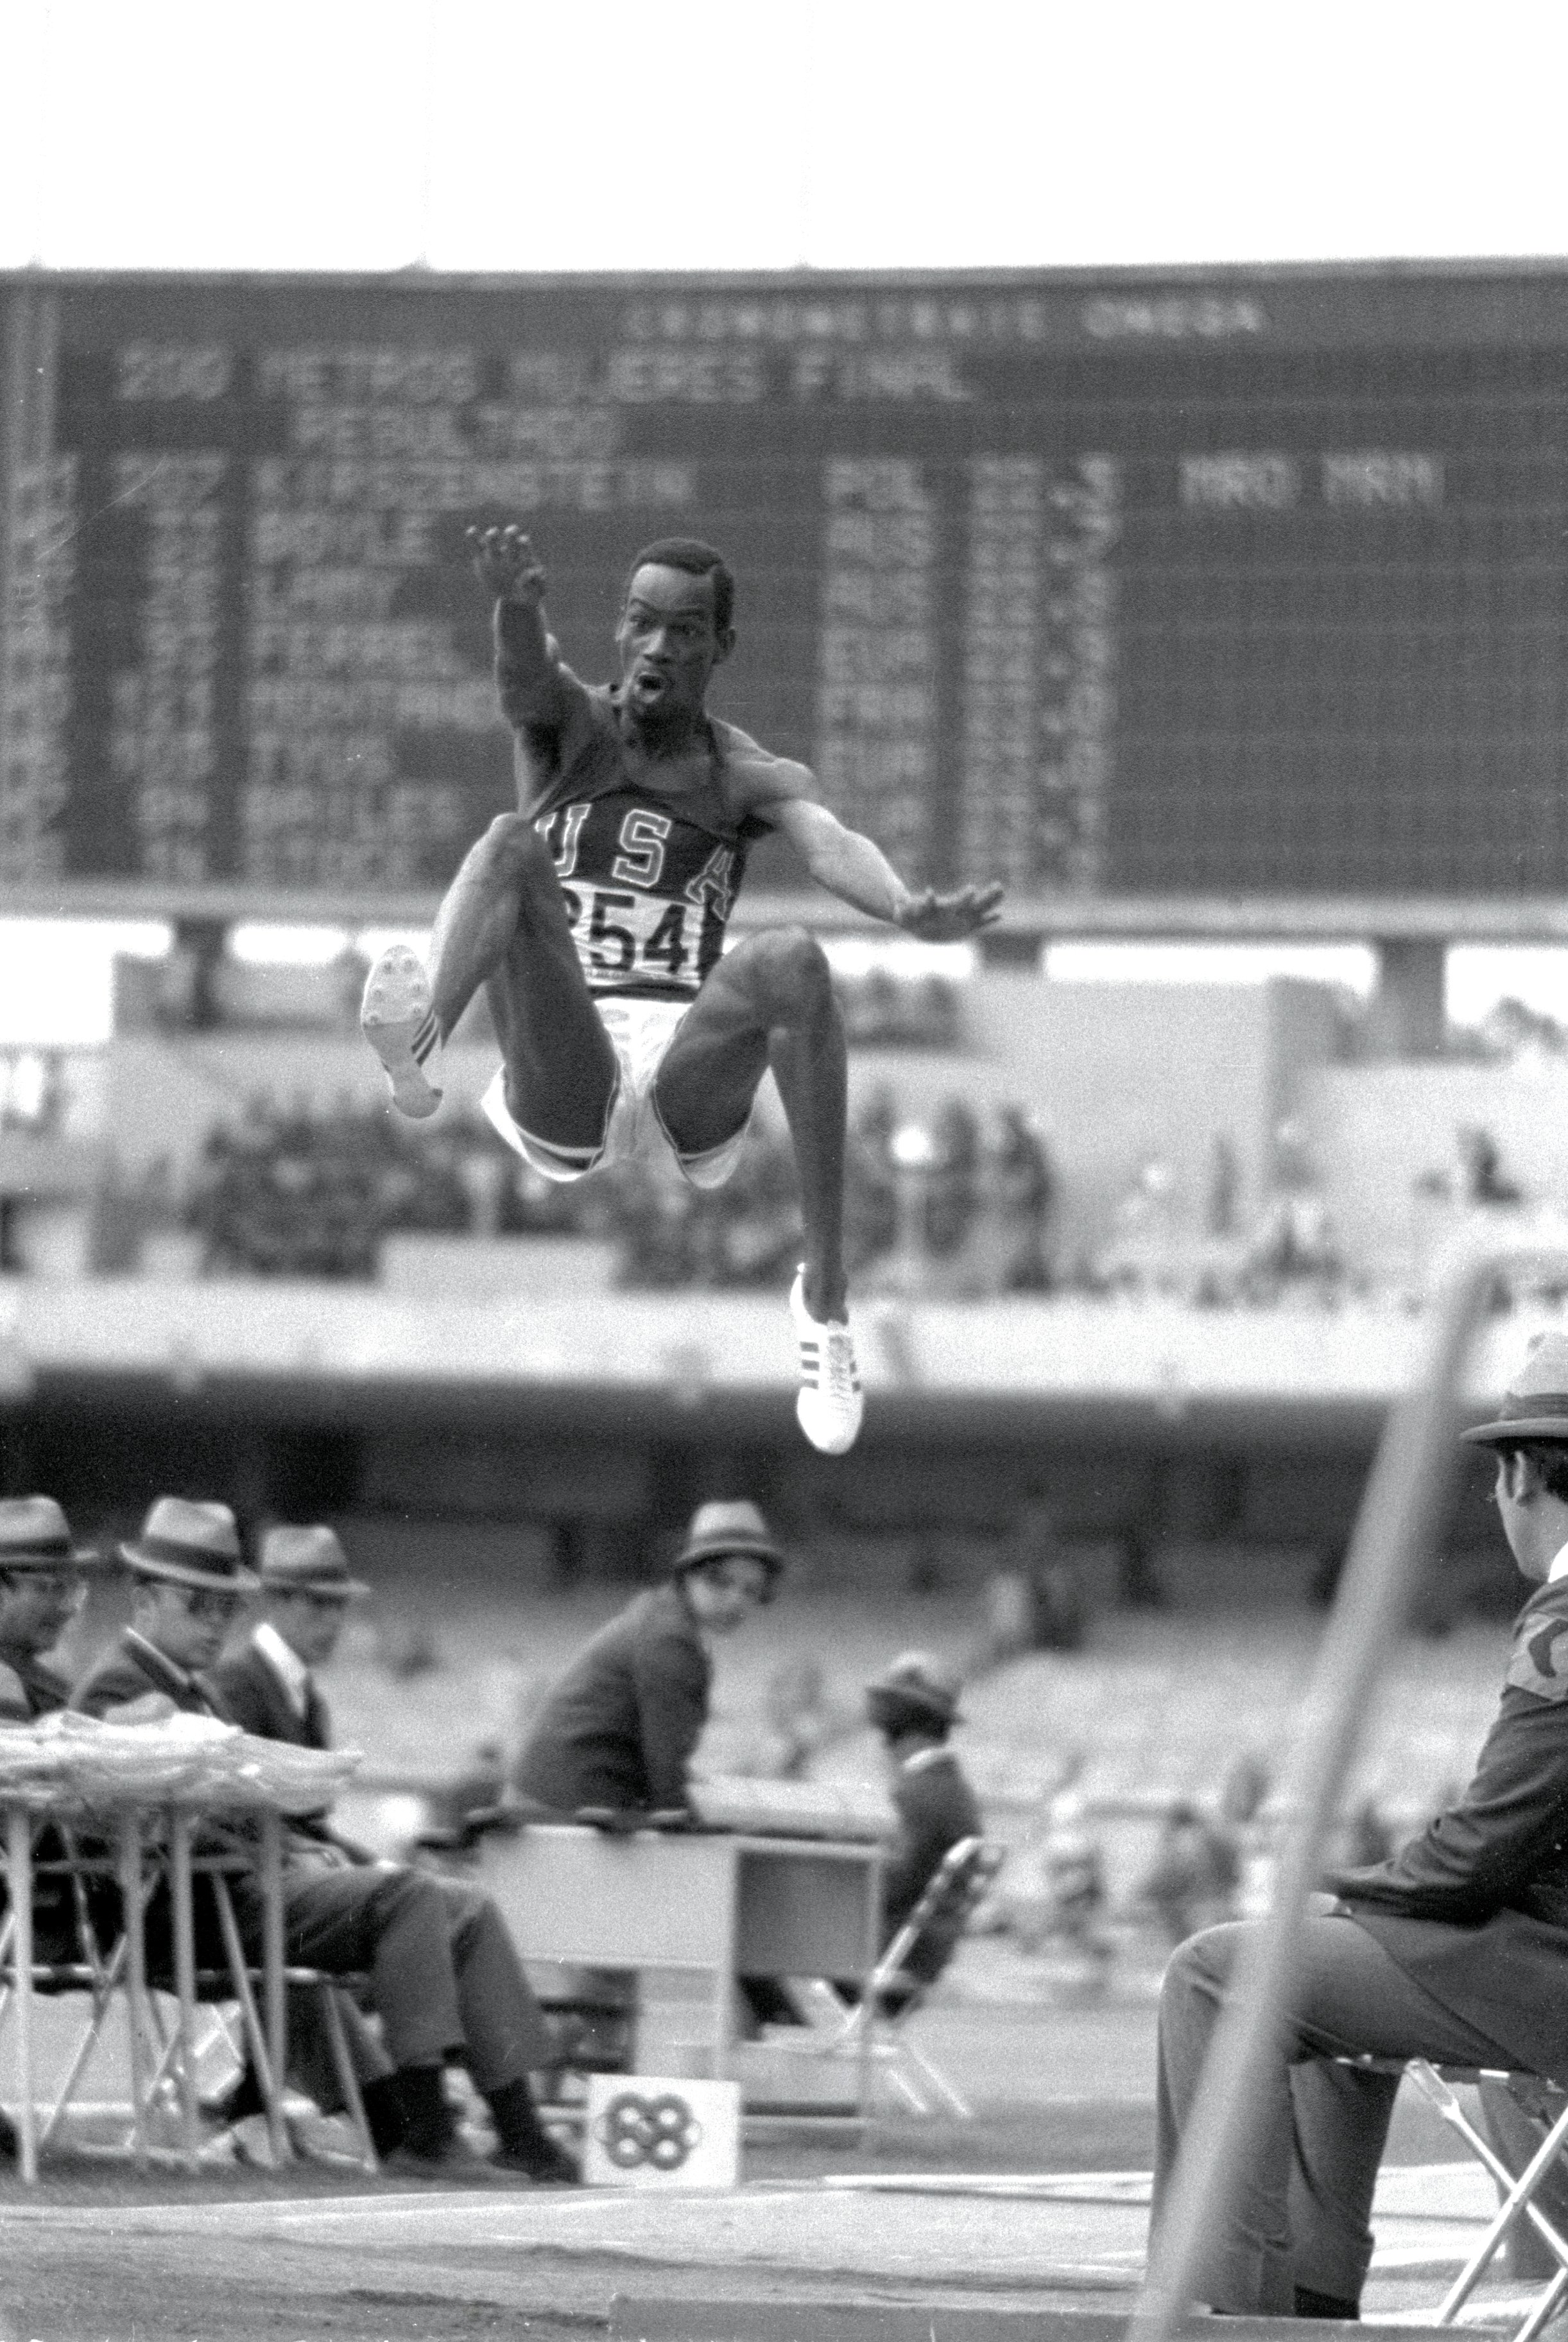 18 Oct 1968: Bob Beamon #254 of the USA breaking the Long Jump World Record during the 1968 Olympic Games in Mexico City, Mexico. Beamon long jumped 8.9 m (29 ft 2 1/2 in), winning the gold medal and setting a new world record. It is the first jump over 28 ft. The most famous long jump ever achieved: Bob Beamon of the United States takes off for a place in sporting history as he leaps 8.90 metres at the Mexico City Games of 1968. While the middle distance runners from the low level countries floundered in the thin air of Mexico City, those in the explosive events reached new peaks, none higher than Beamon, who added 58 centimetres to the world record with a jump aided by a wind of 2 metres per second the very limit of wind assistance. In Imperial measure terms it looked even more impressive since he missed out 28 feet, taking the record to 29 ft 2 ins. Yet Beamon never again managed a jump of 27 feet. It was twelve years before anyone else reached 28 feet (8.53 metres) and the record stood until 1991 when Mike Powell of the US leapt 8.95 metres in Tokyo to win the world title. His jump was at sea level and wind assistance of 0.3mps. Mandatory Credit: Tony Duffy /Allsport